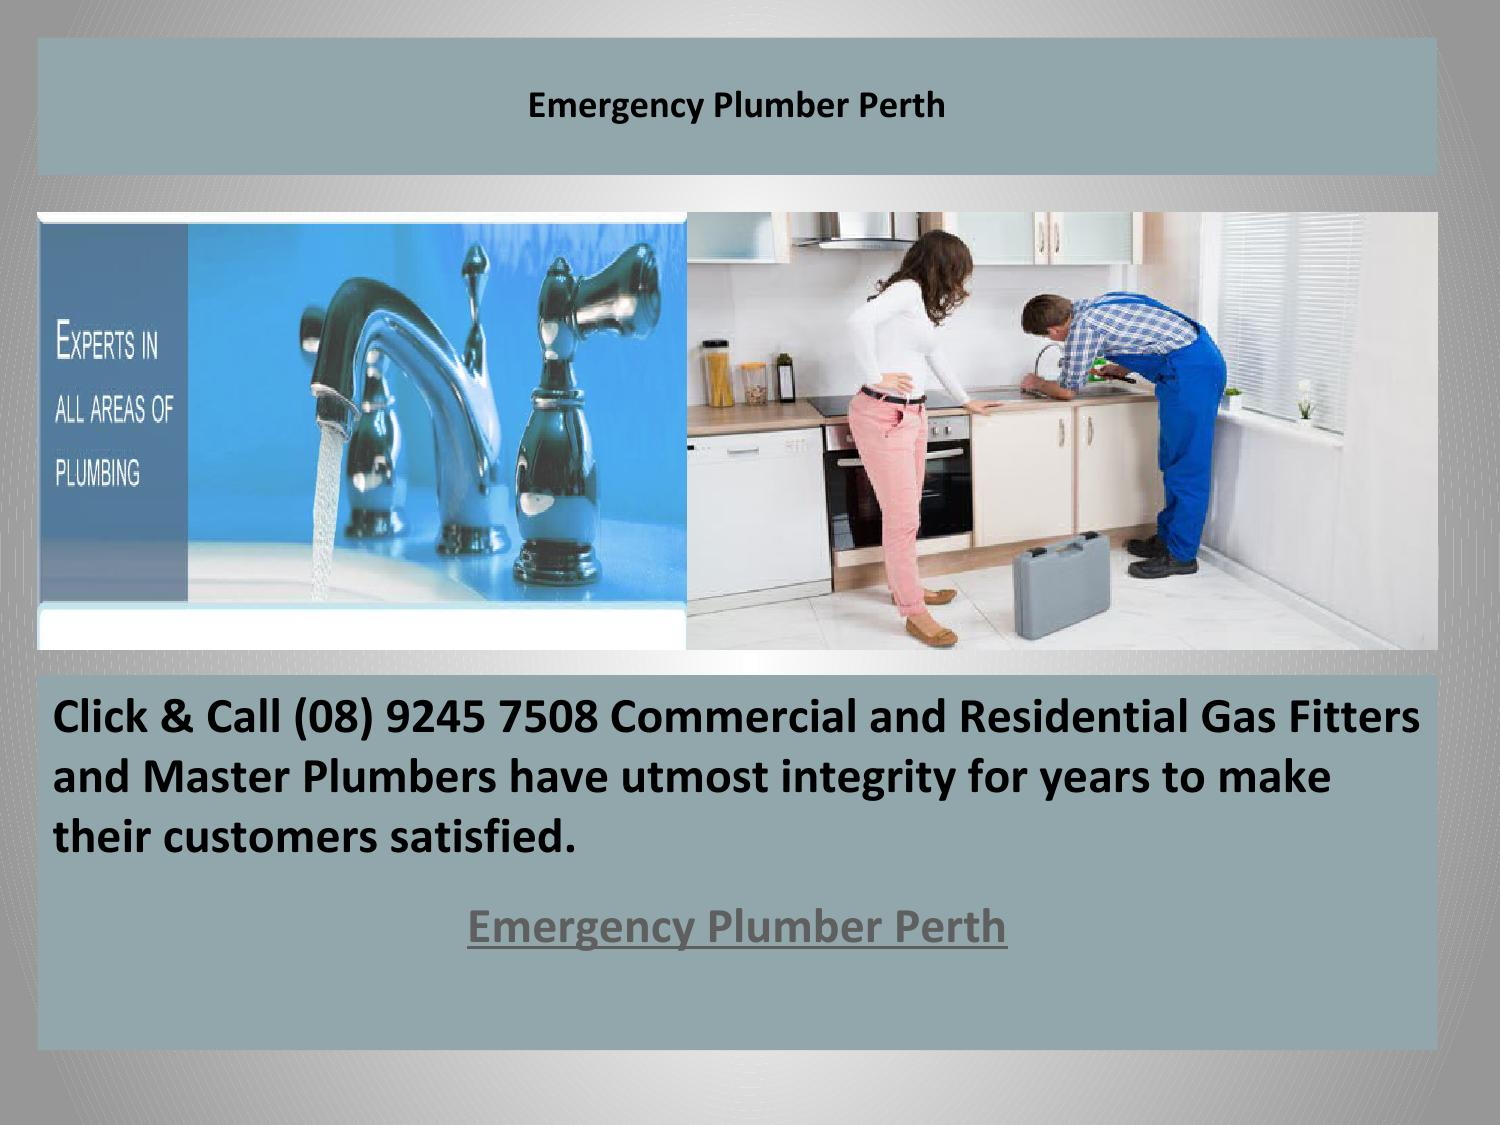 Emergency Plumber Perth By The Plumbing And Gas Guys Issuu